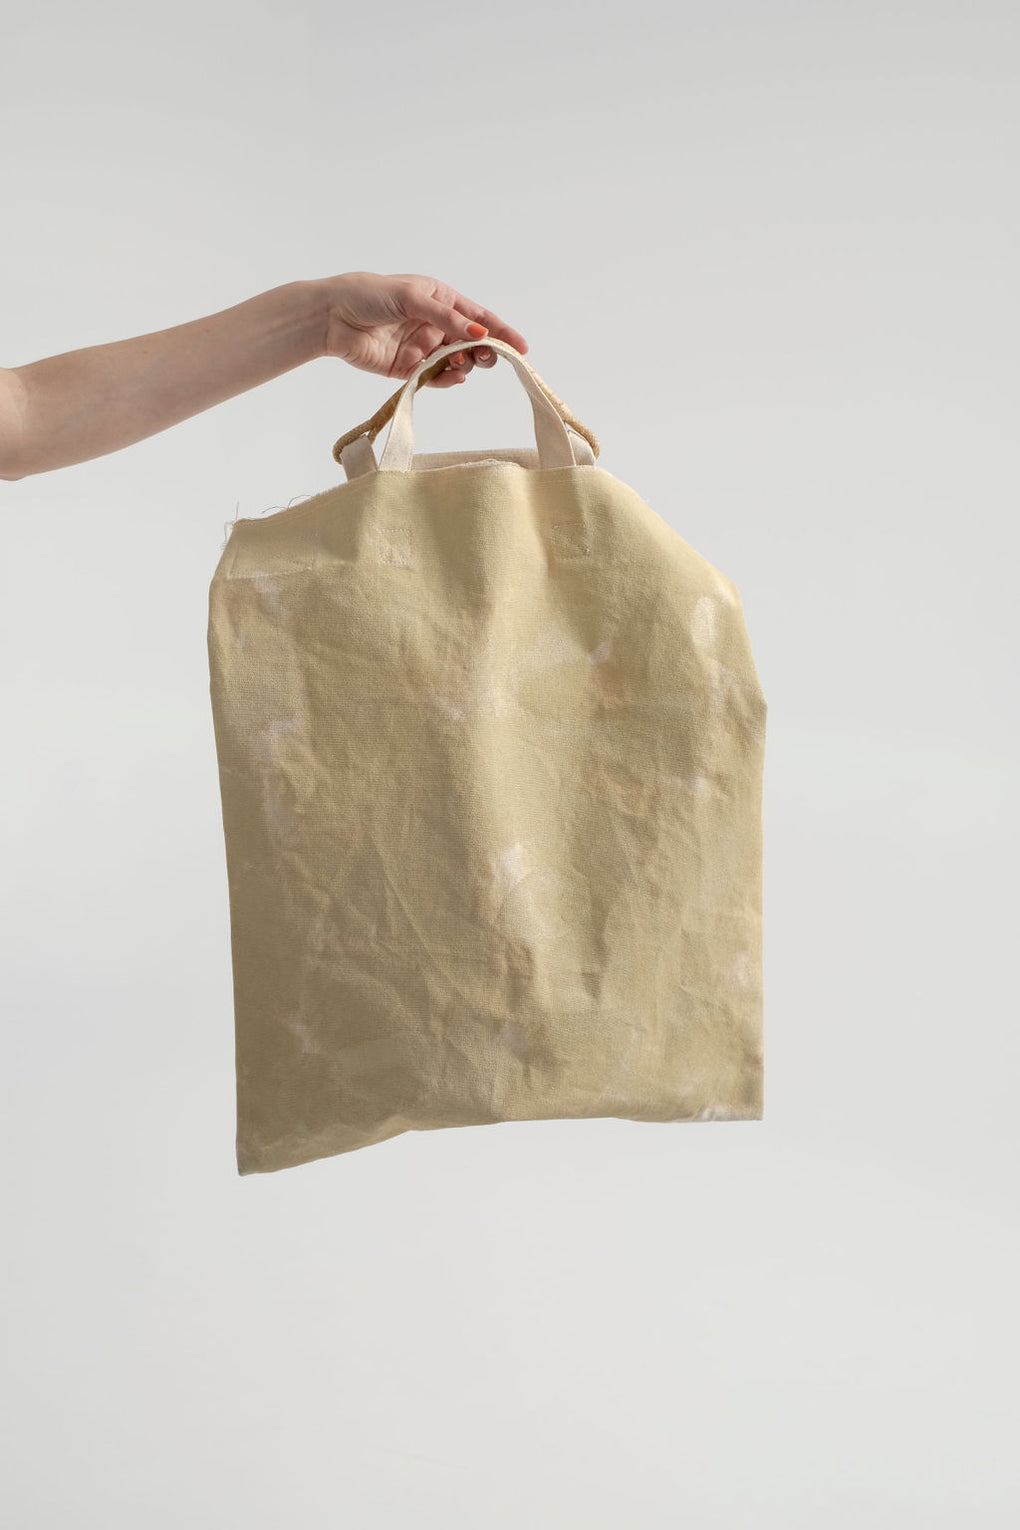 Rachel Comey-Lee Tote-canvas tote-grocery tote-yellow tote-hand painted tote-Idun-St. Paul